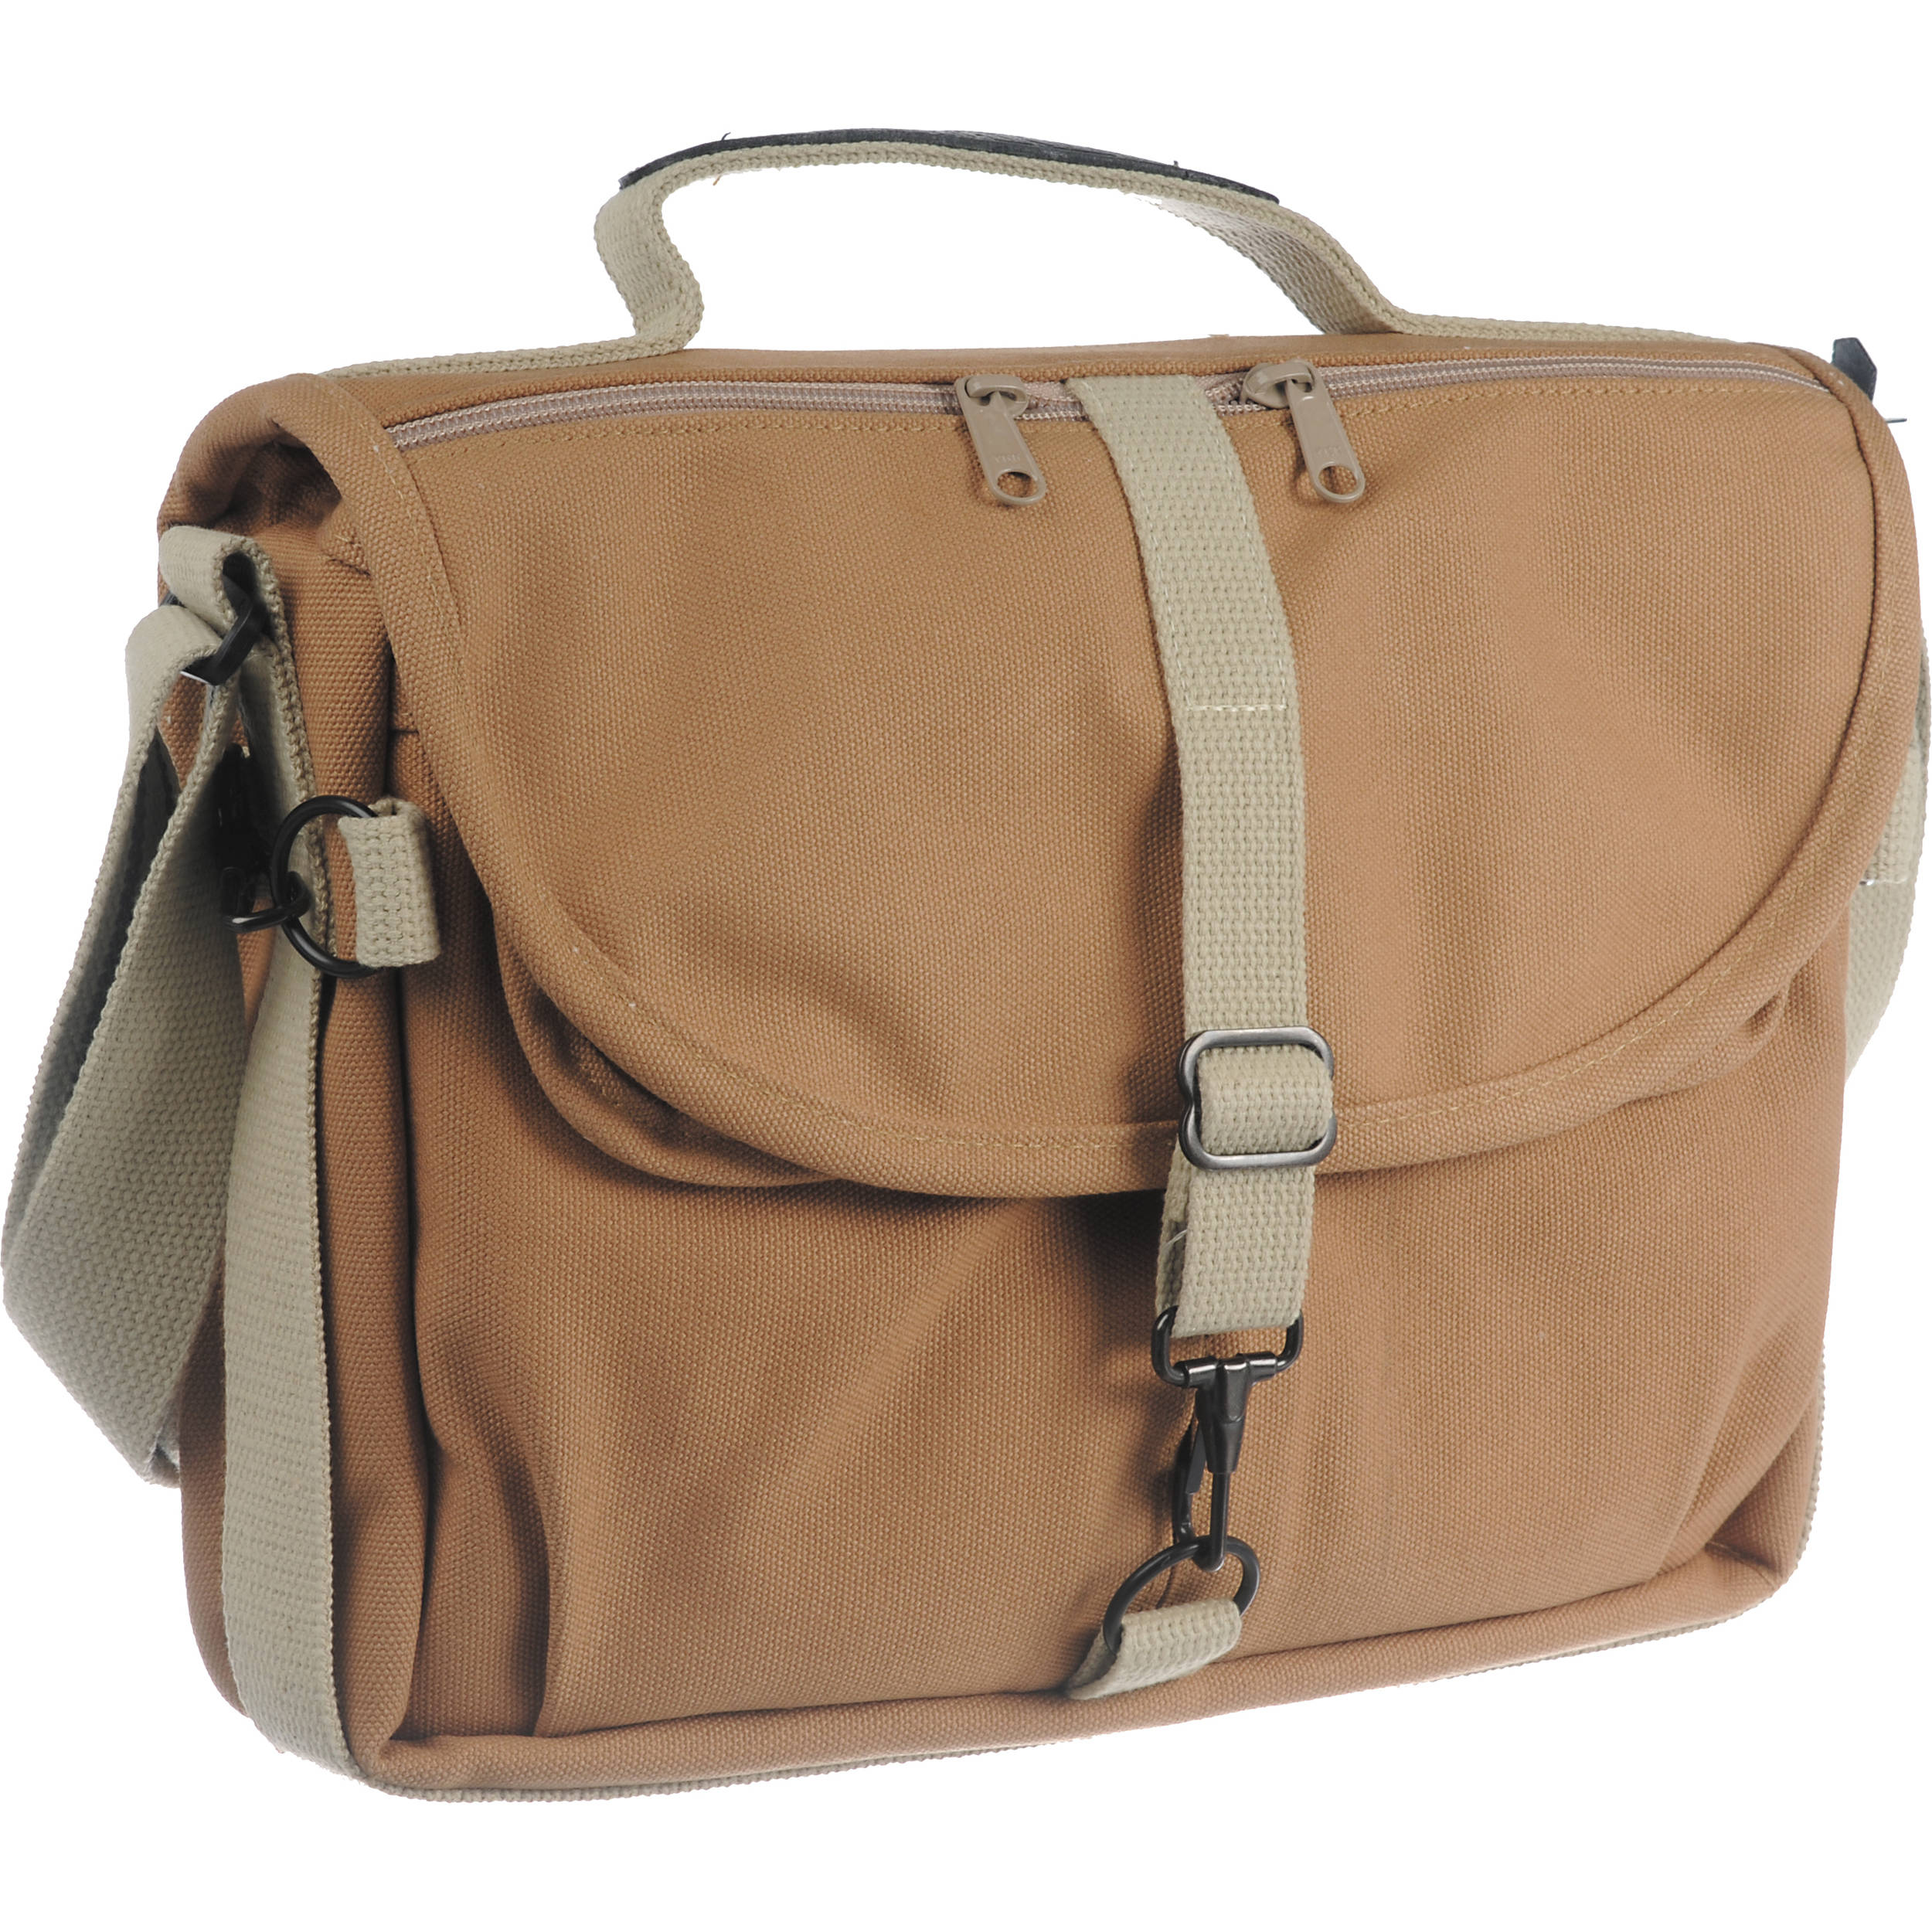 Domke F 803 Camera Satchel Shoulder Bag Sand